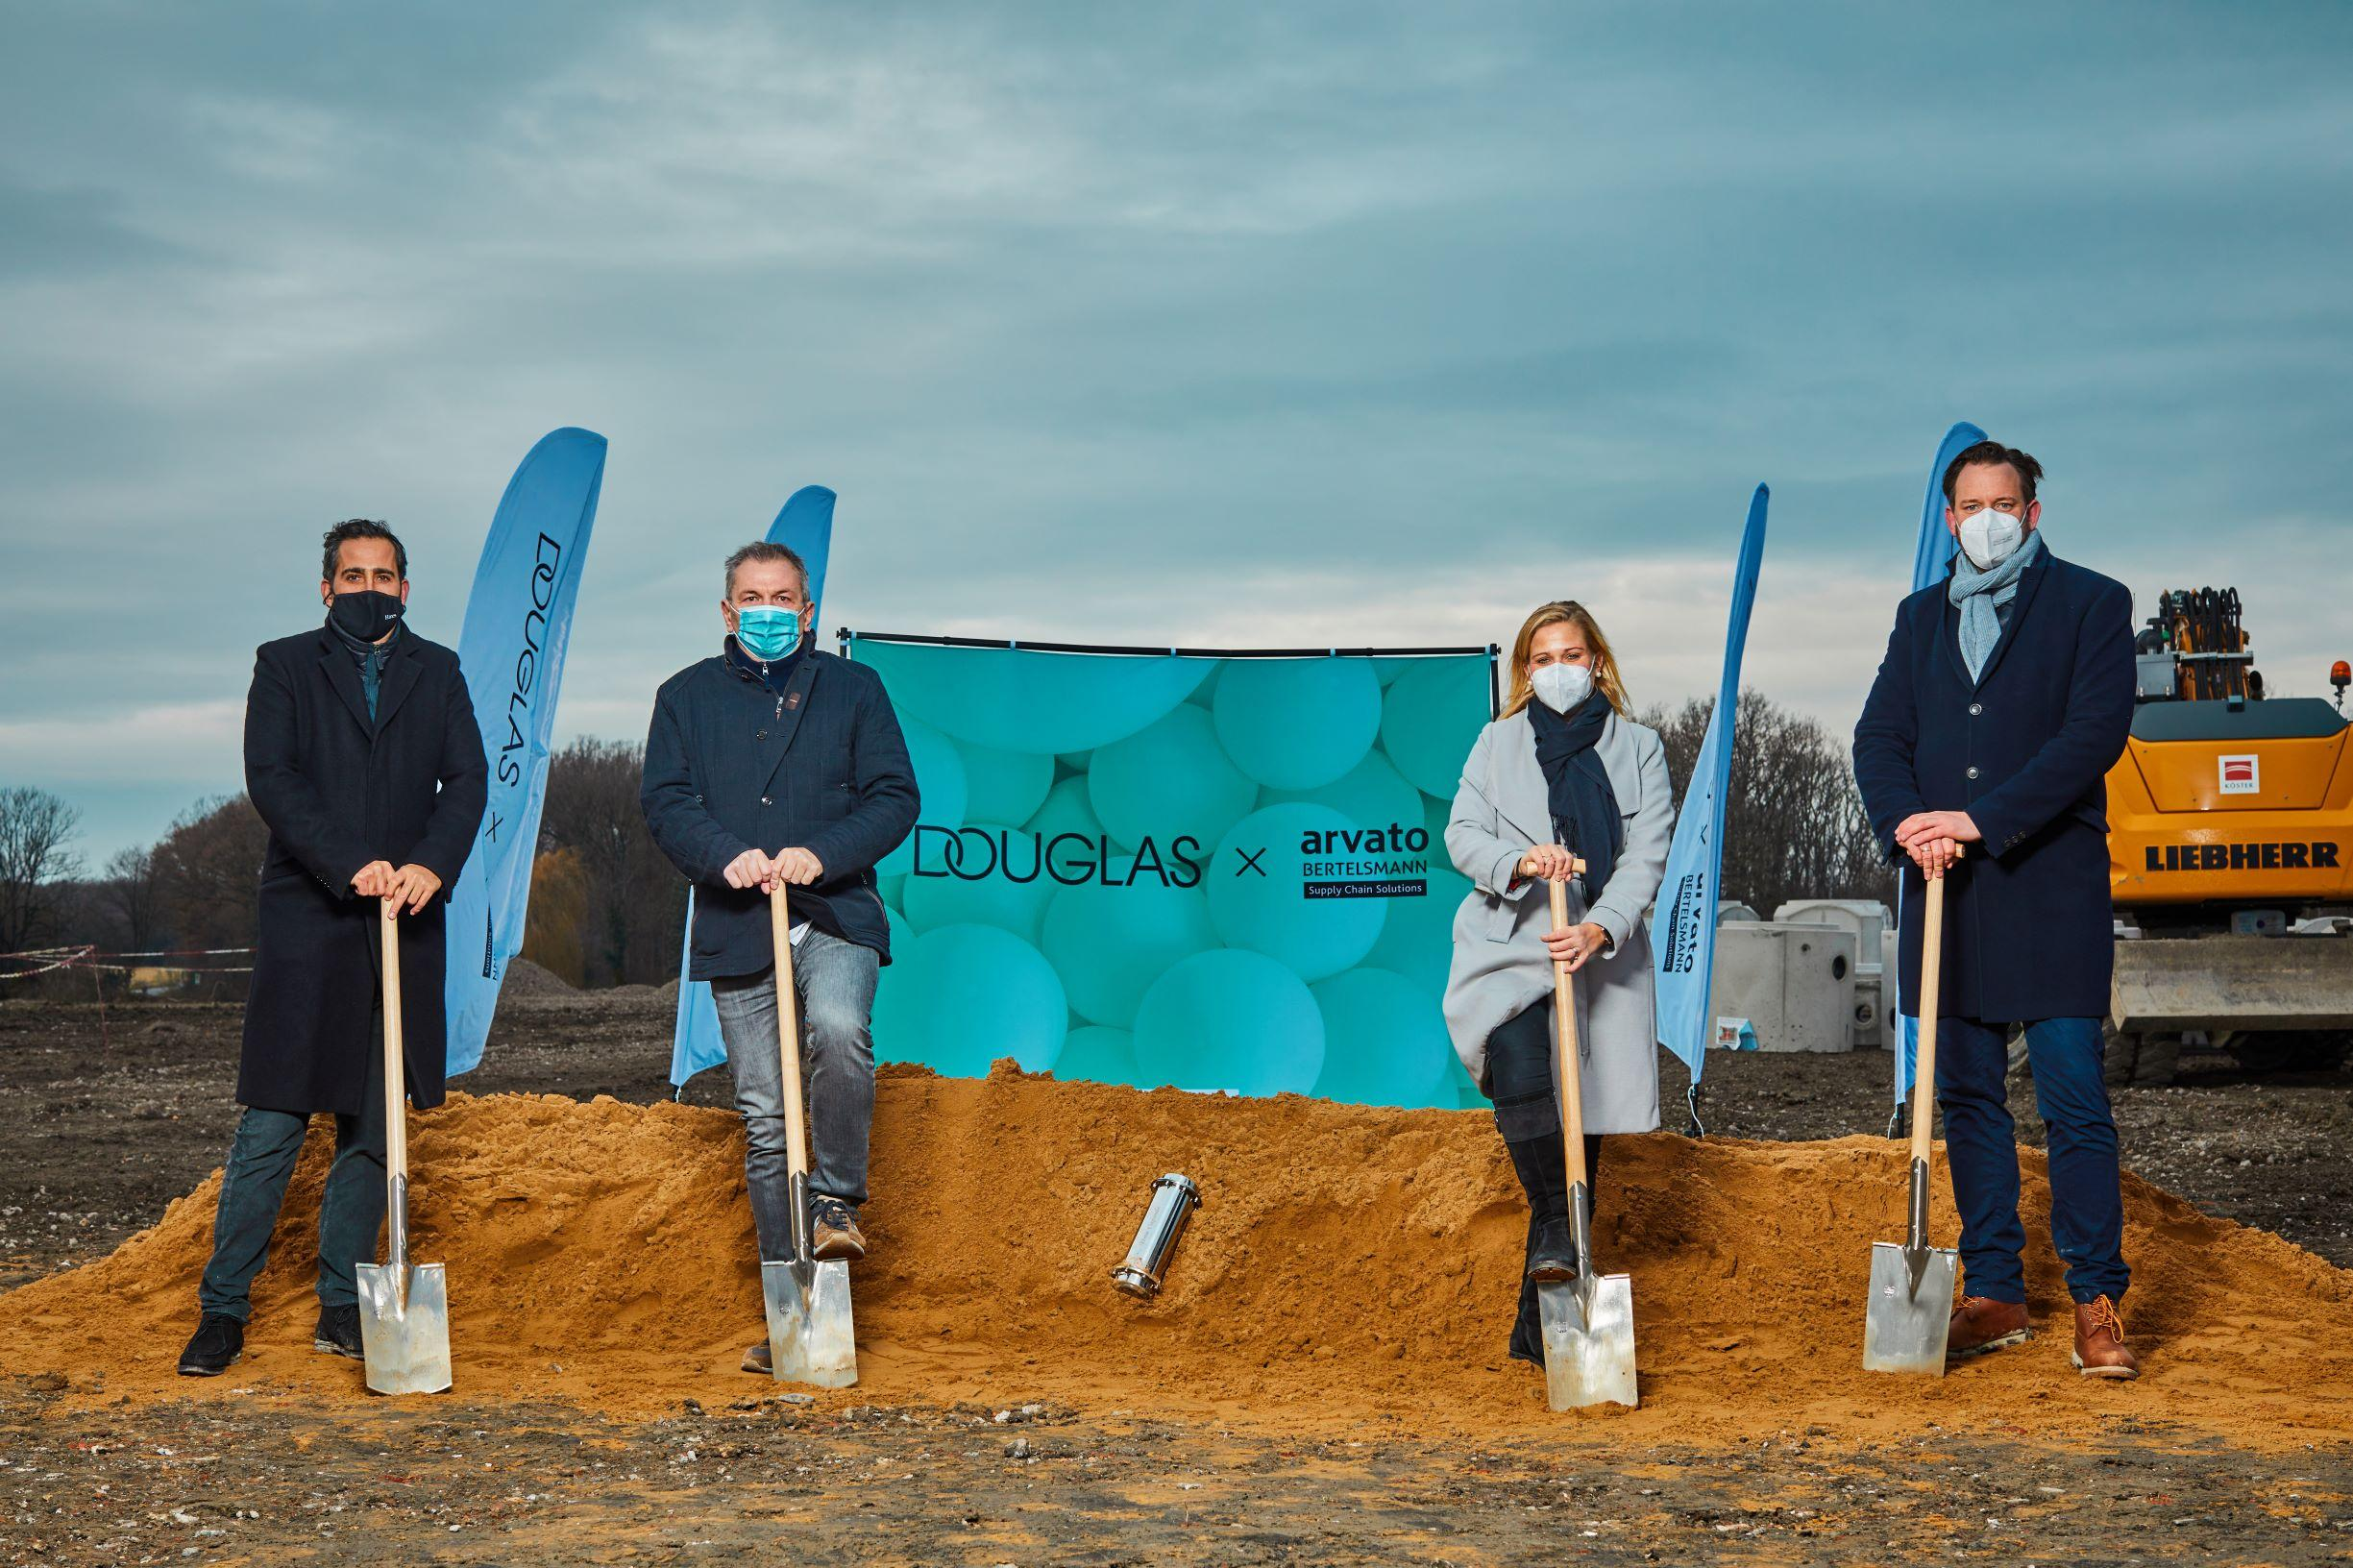 Picture: from left to right Alexander Moell (Senior Managing Director, Hines Immobilien), Frank Schirrmeister (CEO, Arvato Supply Chain Solutions), Julia Börs (President Consumer Products, Arvato Supply Chain Solutions), Christian Meister (Managing Director, Hines Immobilien)